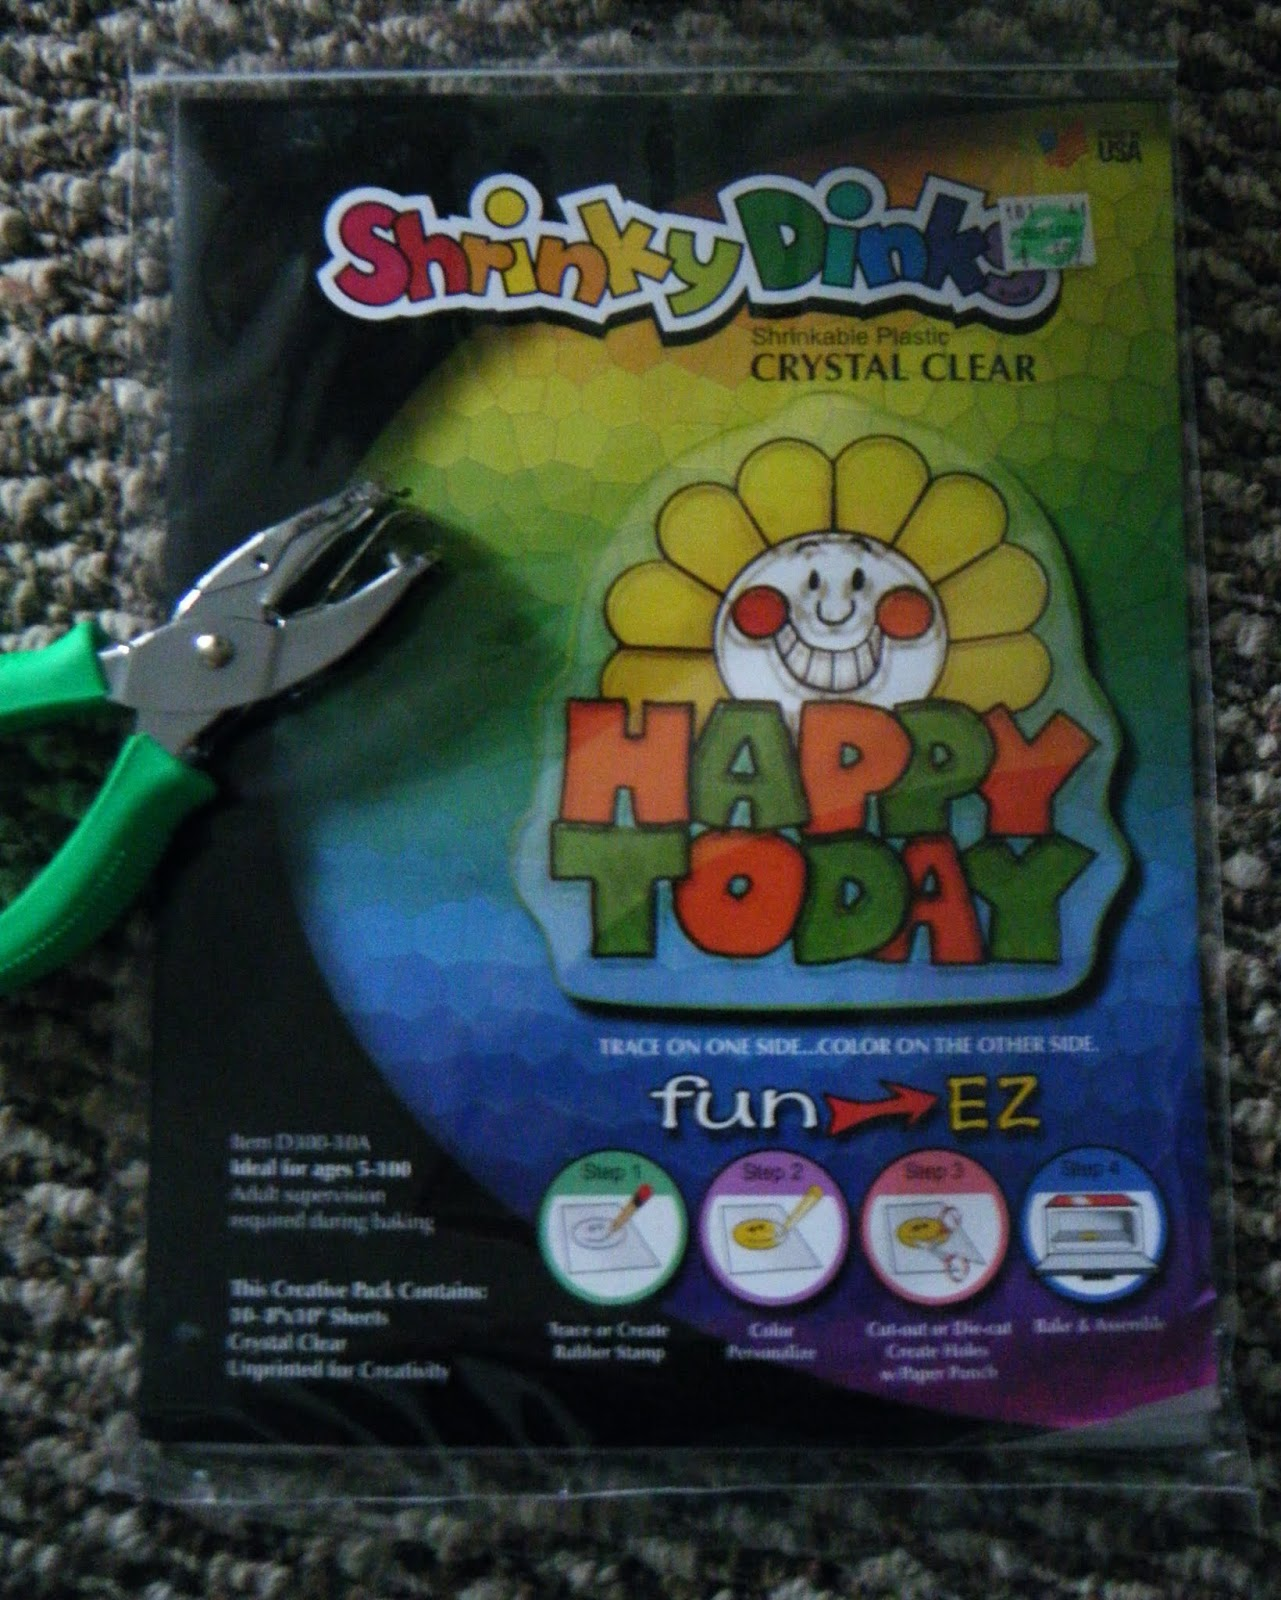 shrinky dink paper instructions